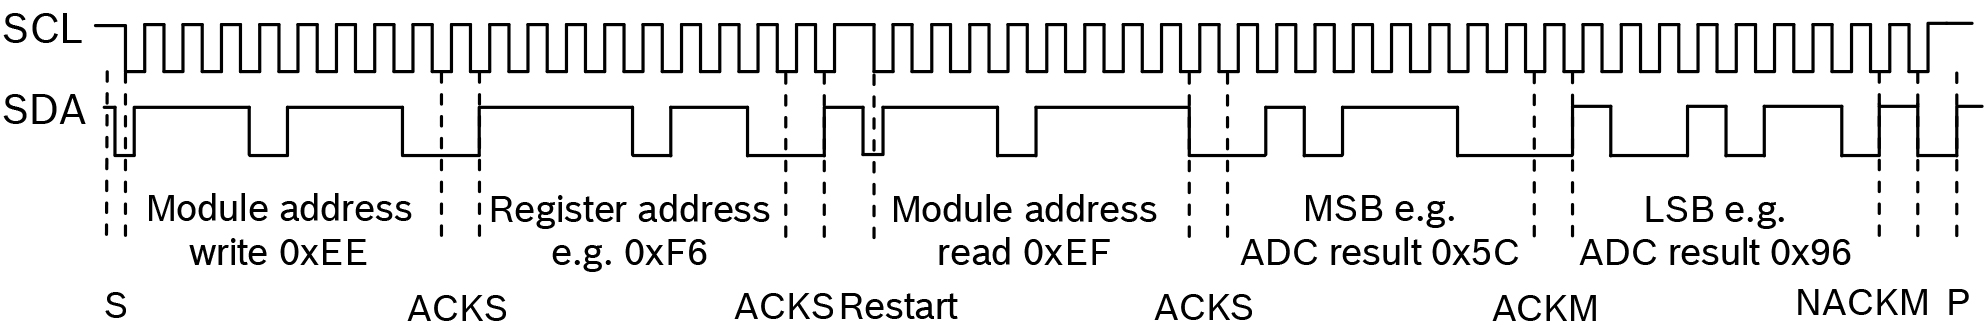 Figure 1. Timing diagram read 16 bit A/D conversion result [BMP085 Datasheet]